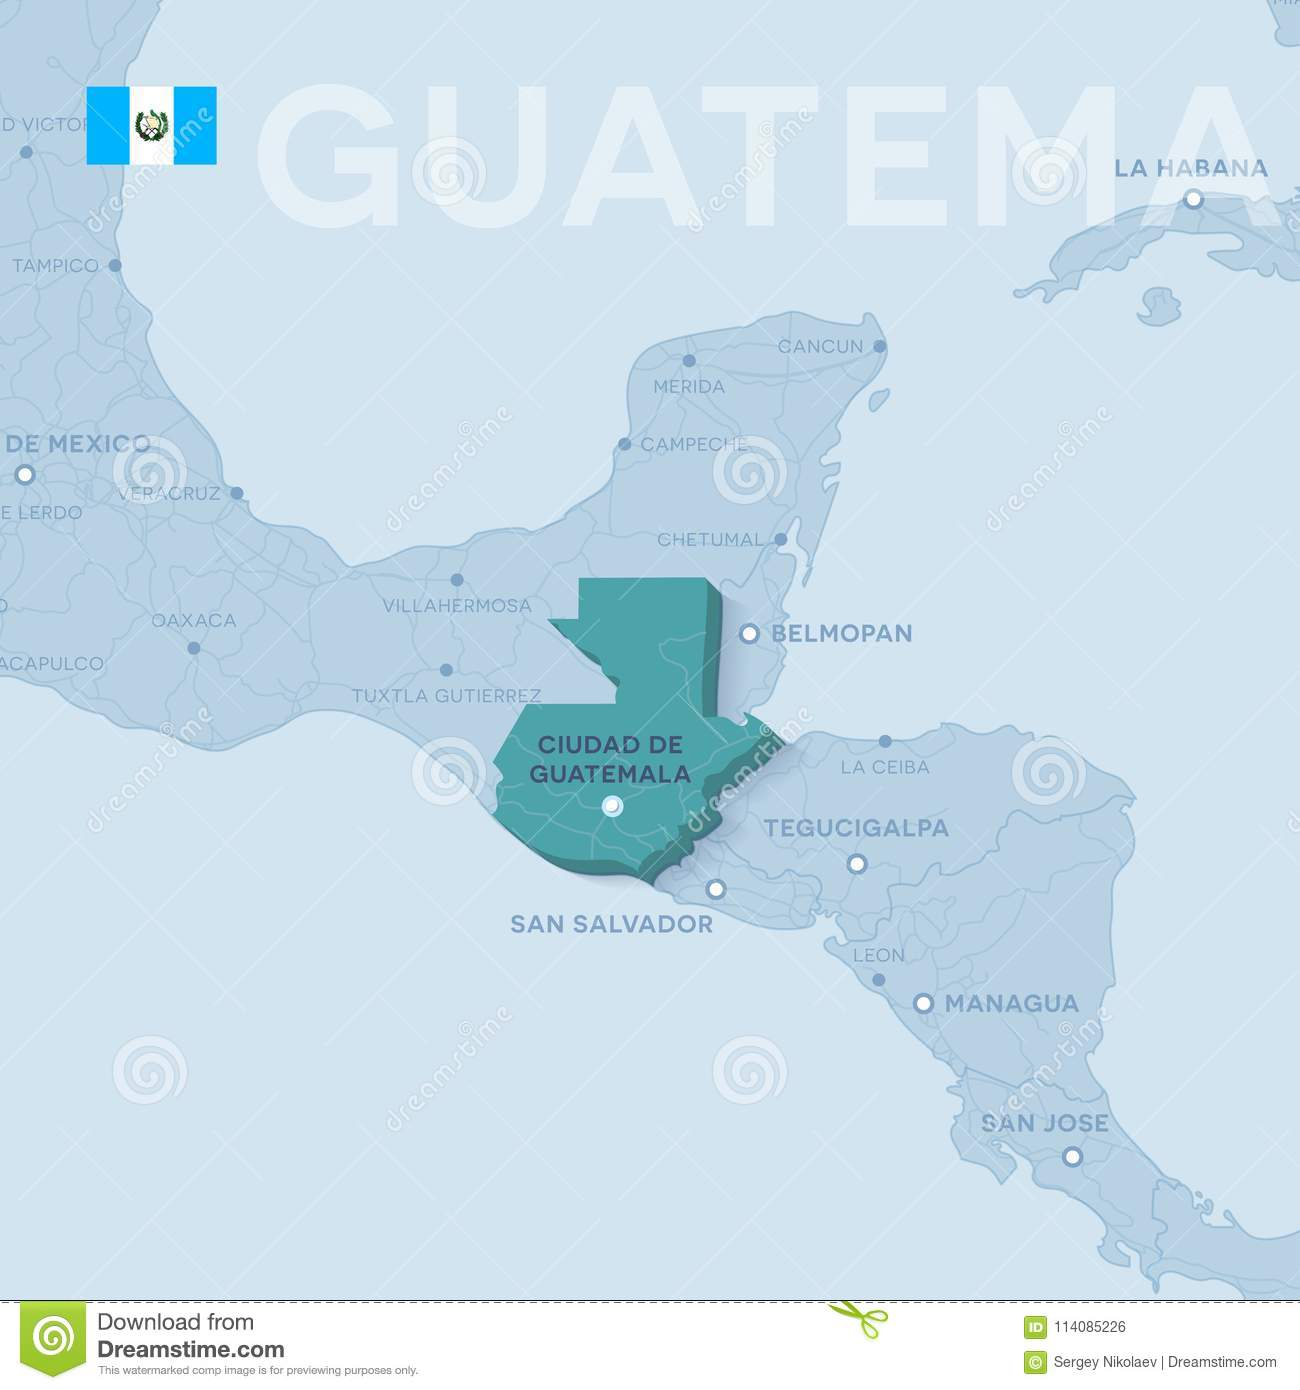 Verctor Map Of Cities And Roads In Guatemala. Stock Vector ...